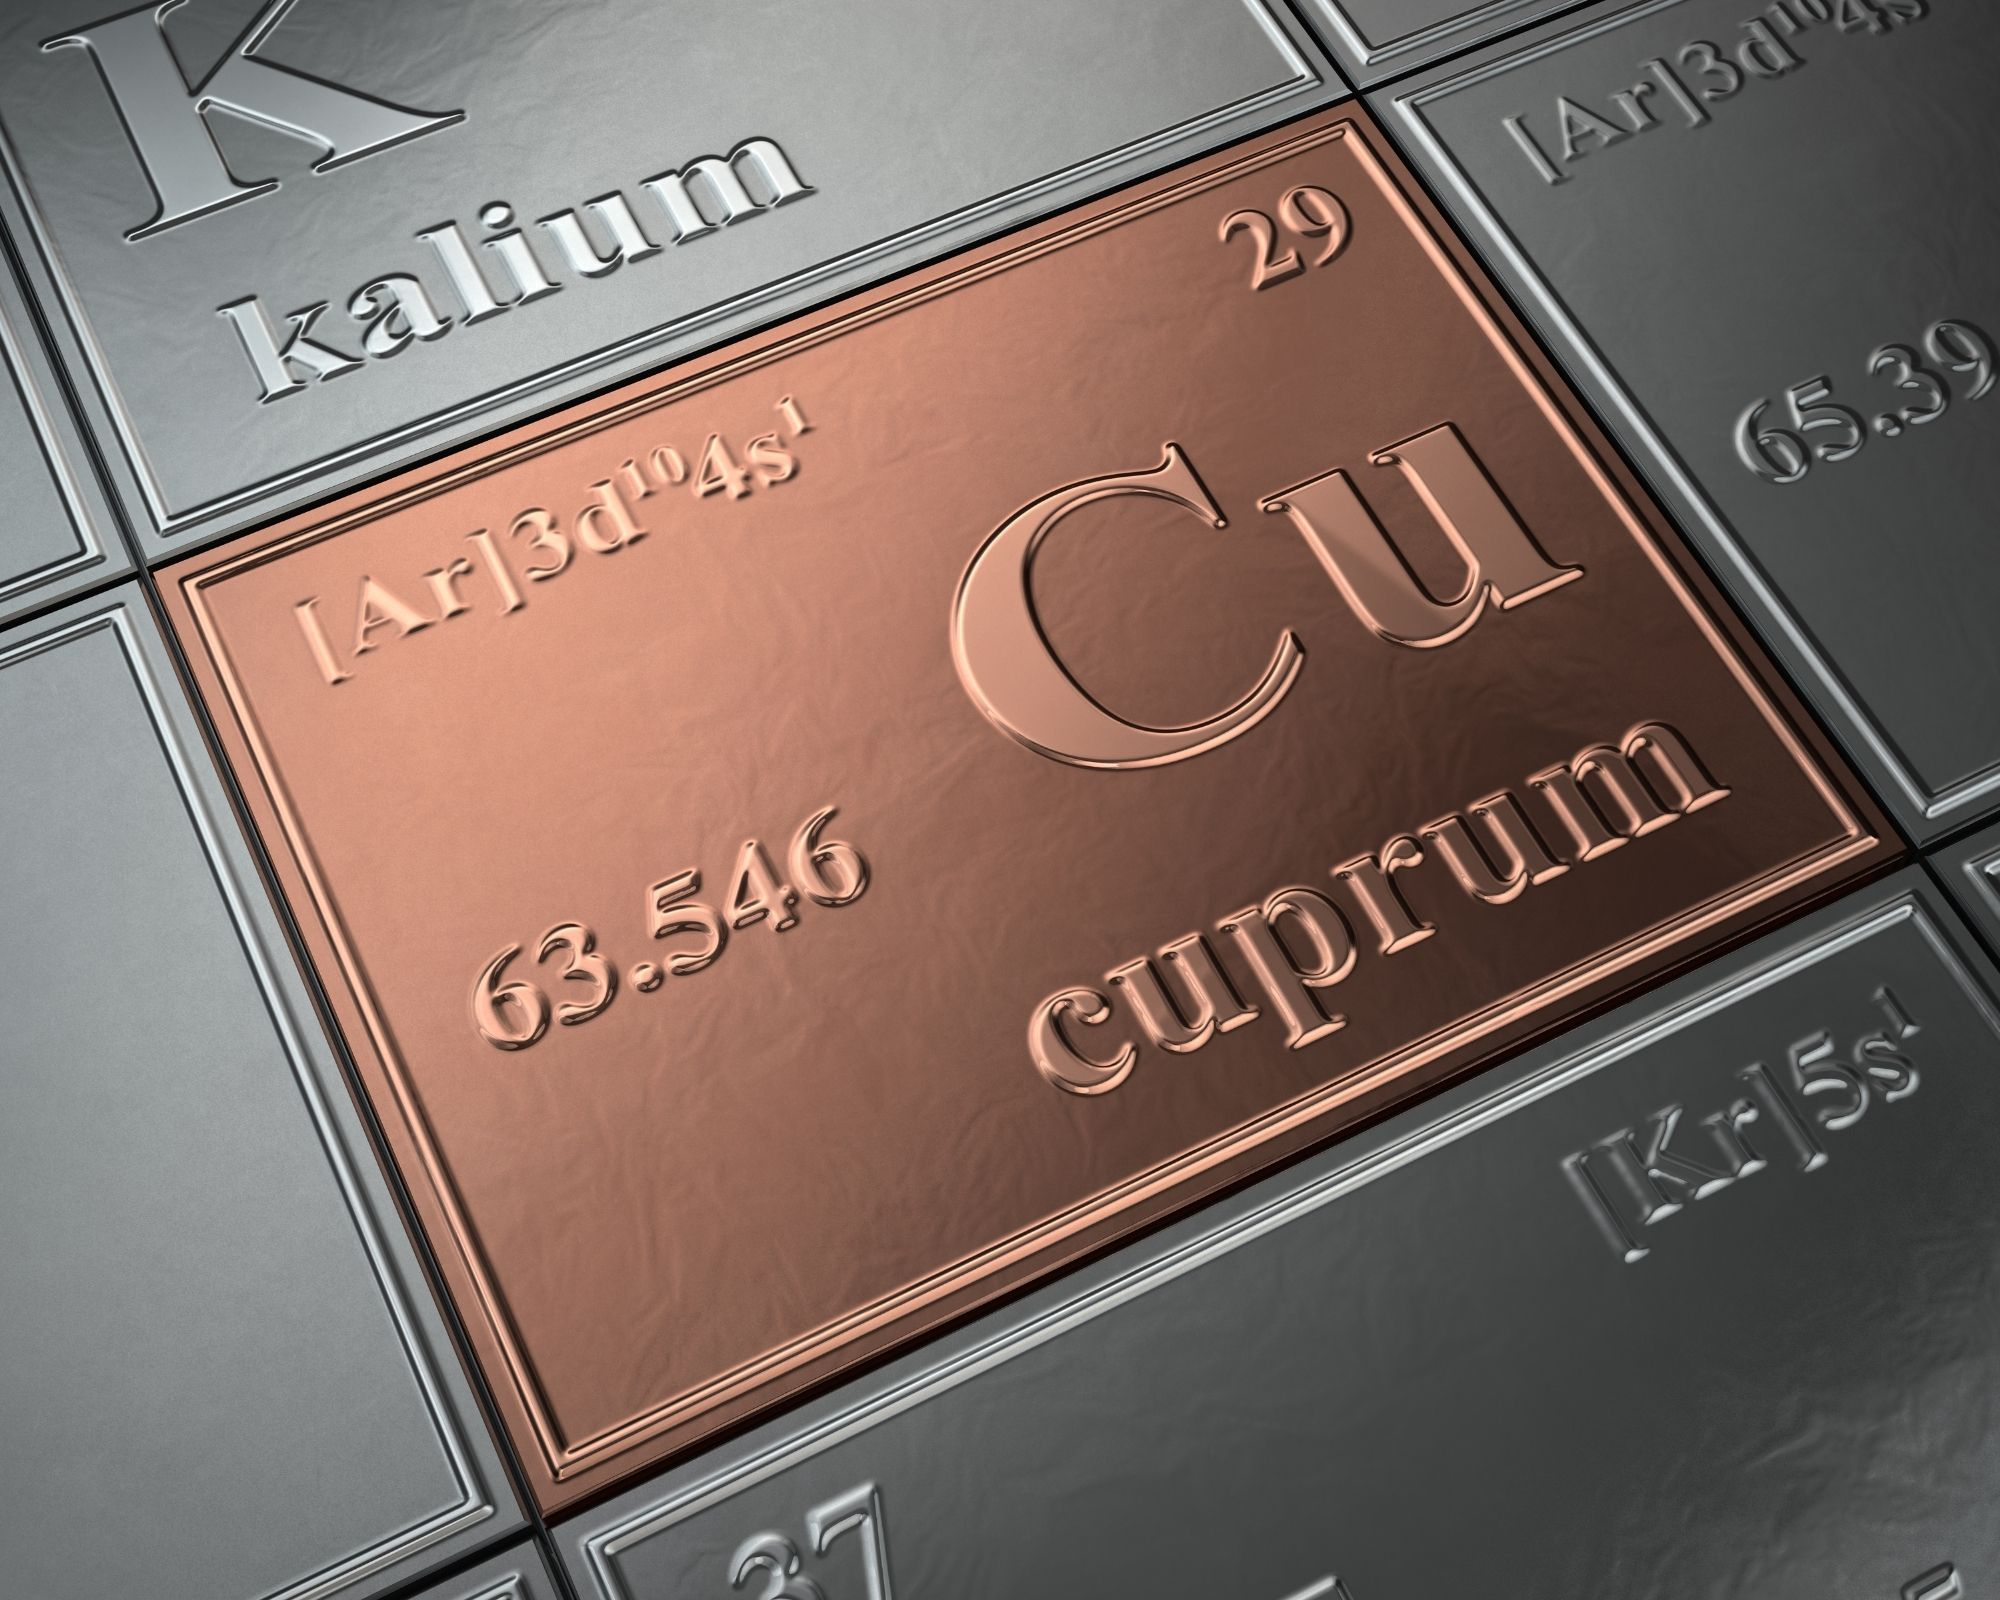 Periodic table showing Copper